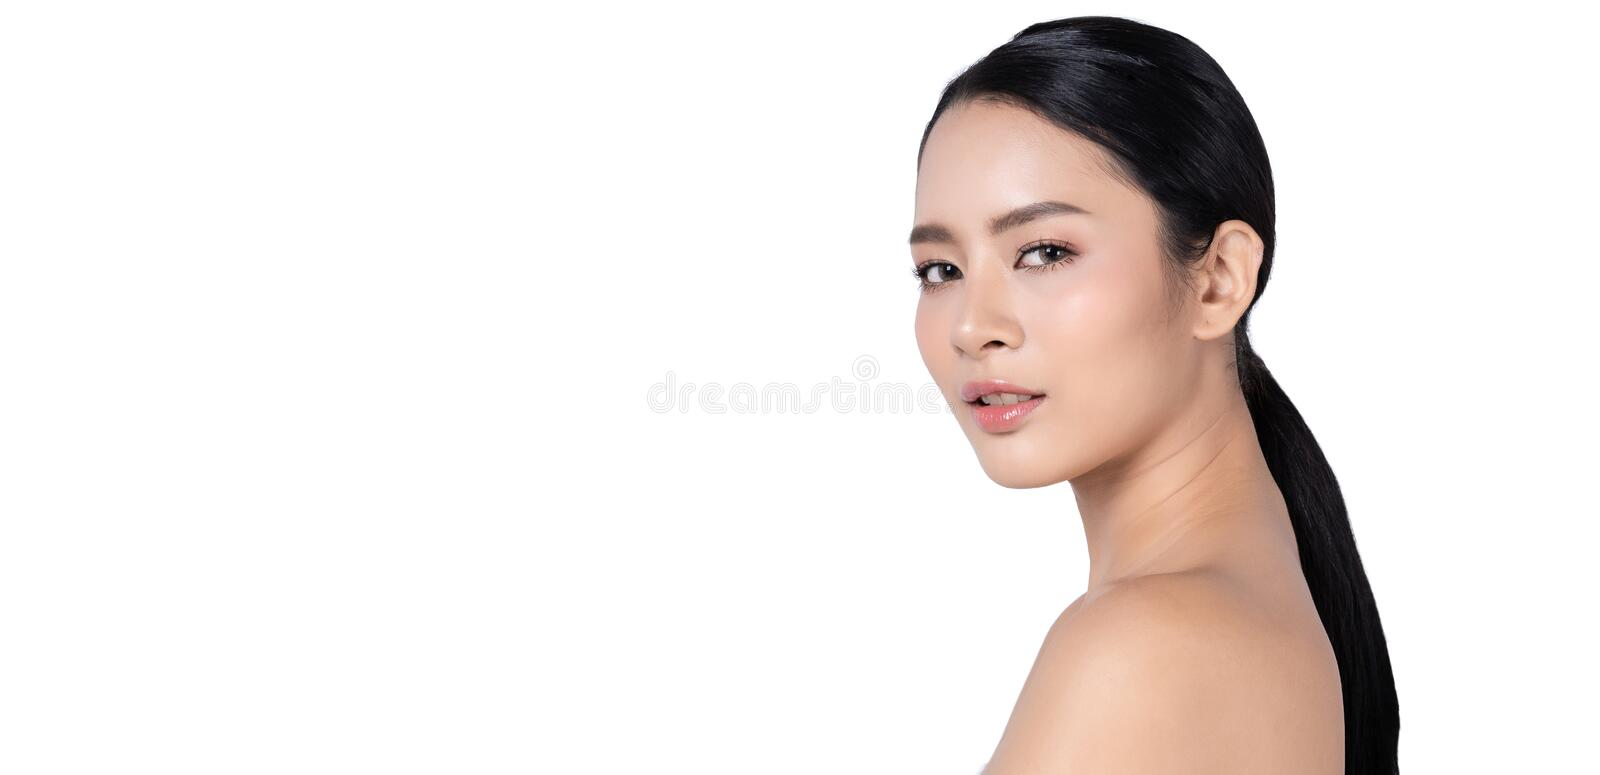 Side view of beauty Asian woman face closeup profile portrait looking at camera isolated on white background banner, Wide screen stock image